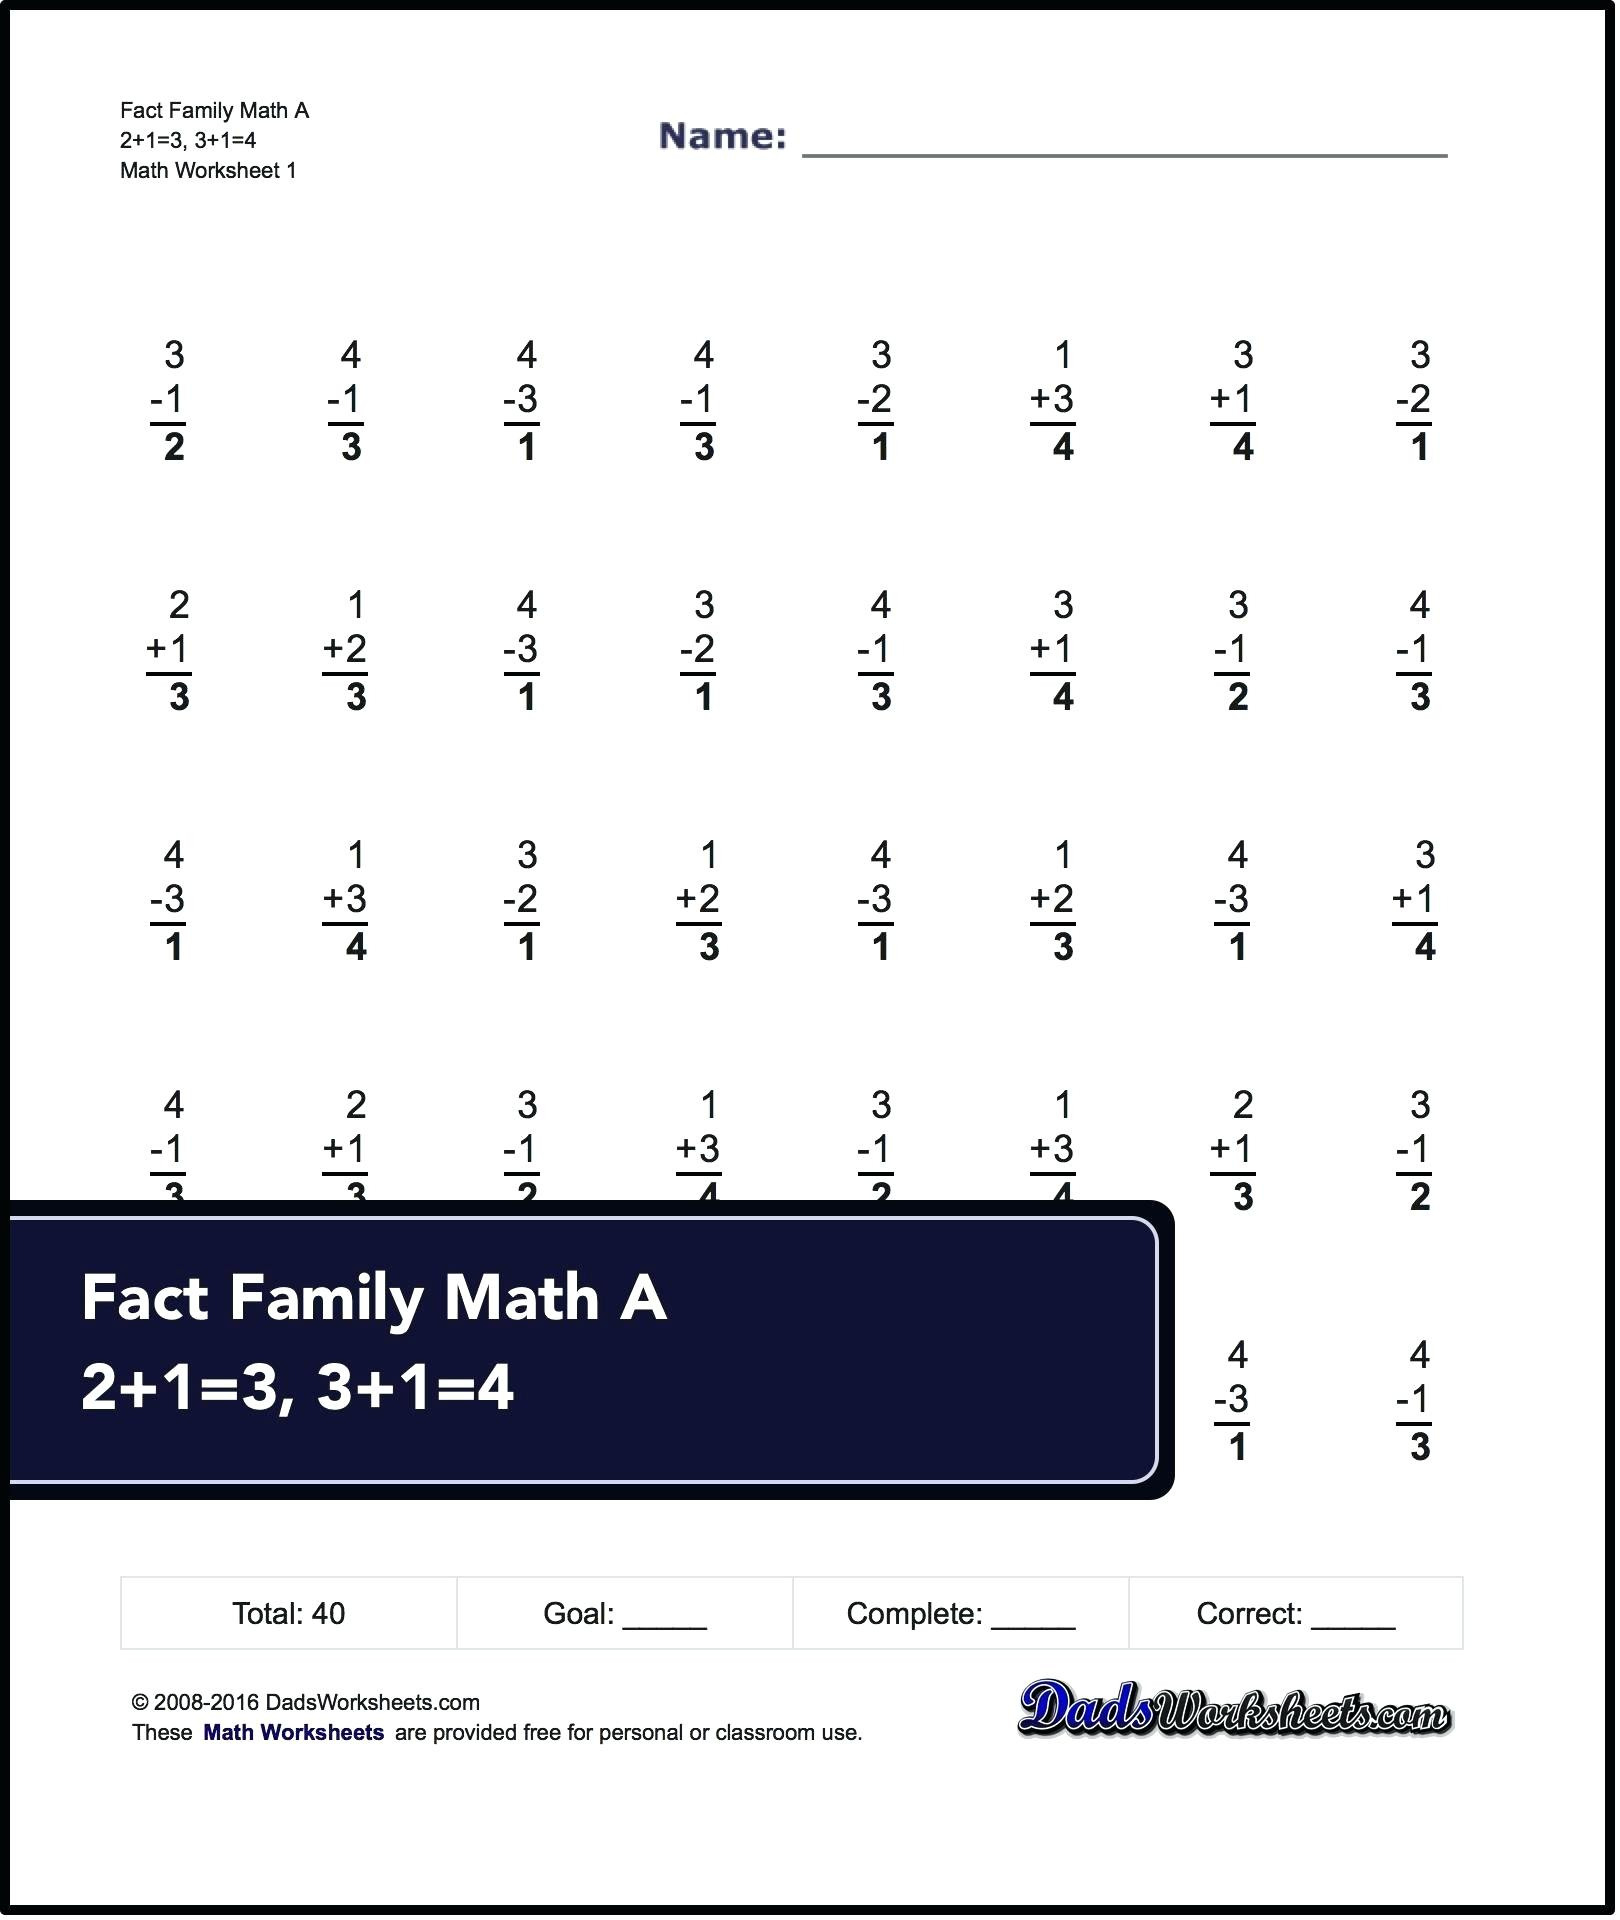 Touch Math Worksheets Generator | db-excel.com